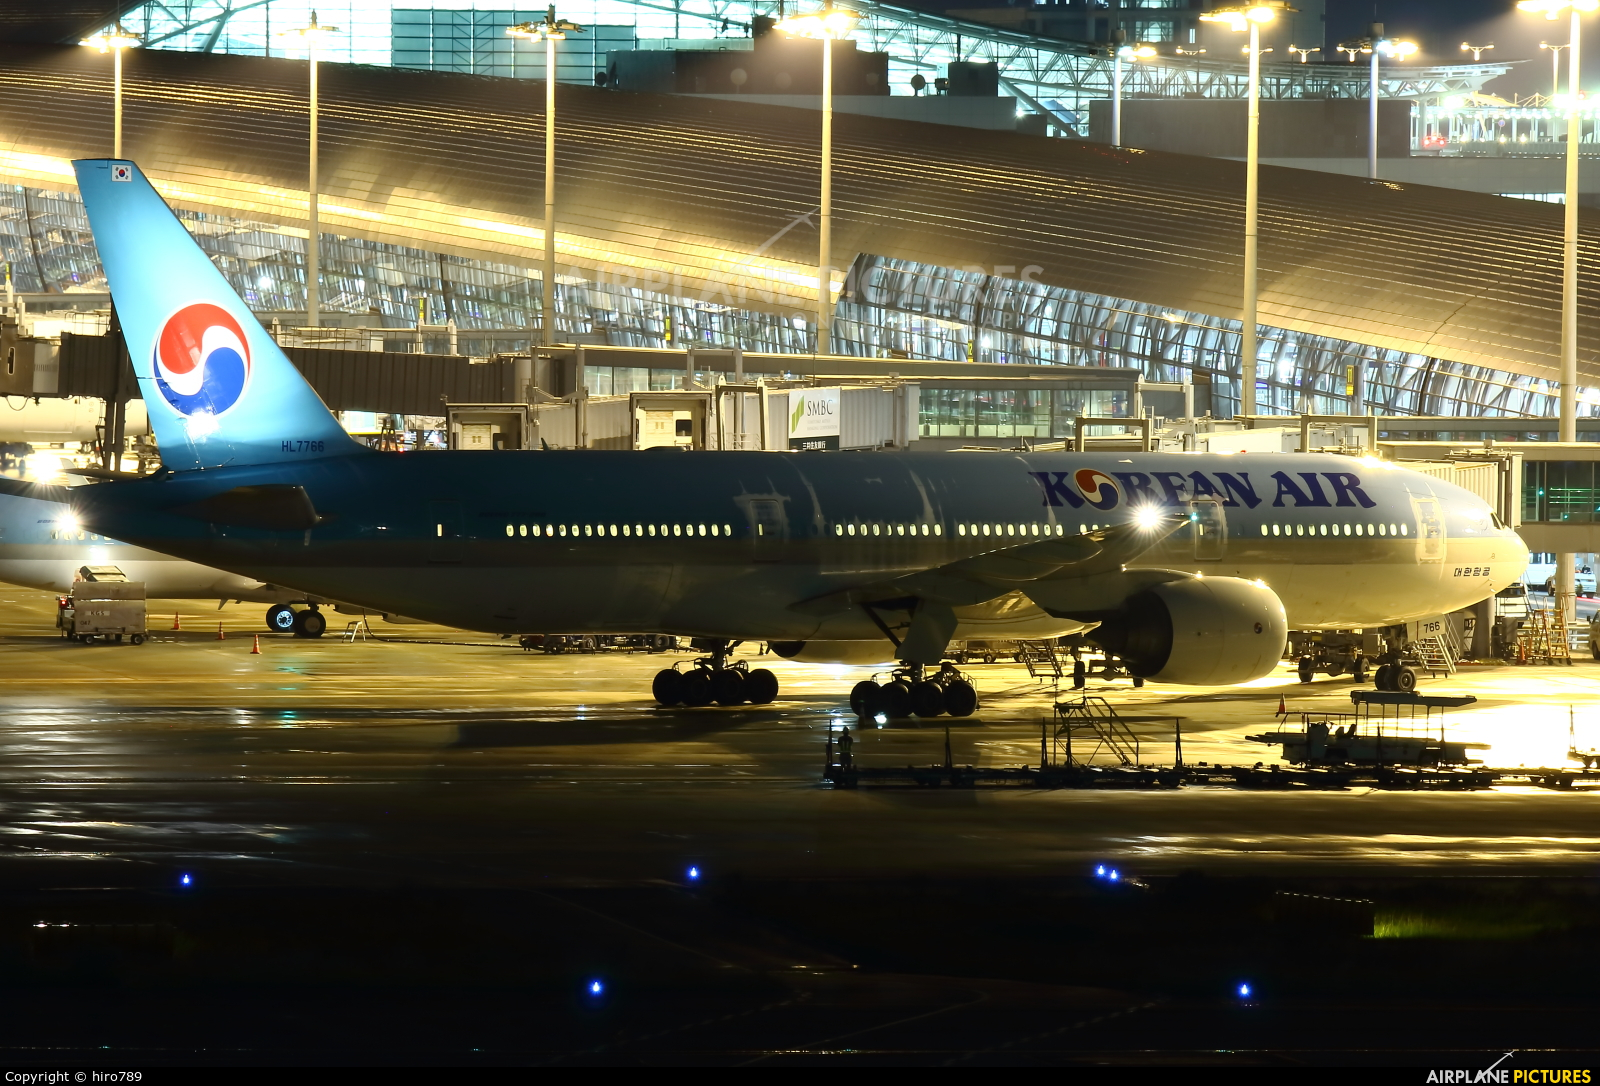 Korean Air HL7766 aircraft at Kansai Intl